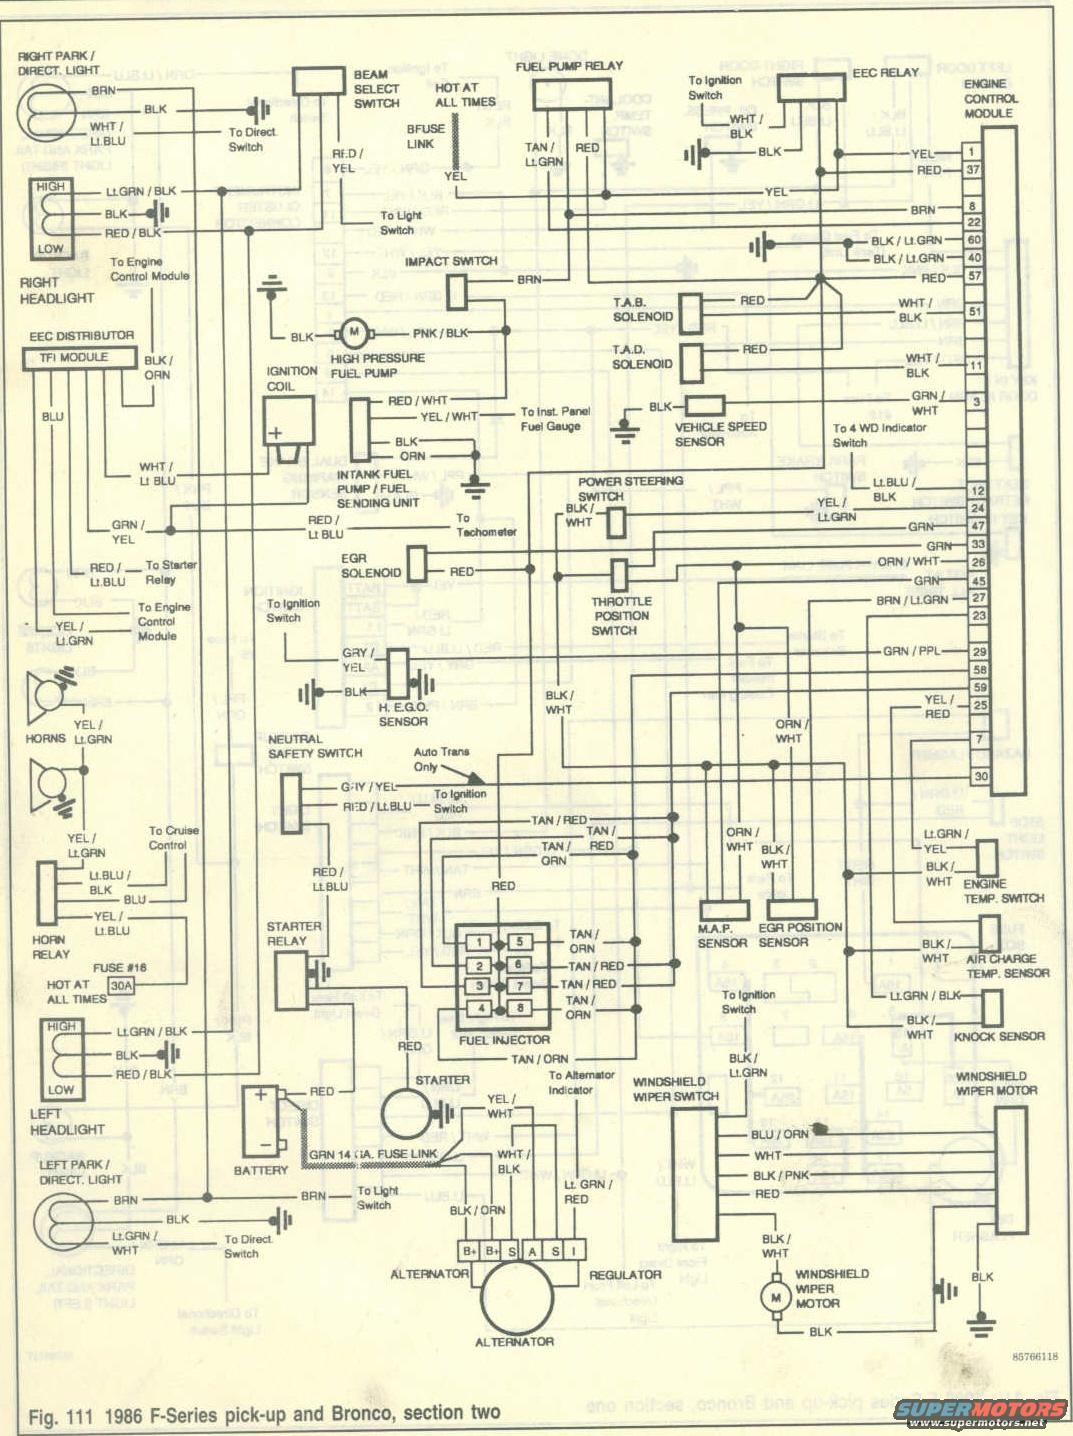 wiring diagram ford bronco wiring diagrams and schematics bronco wiring diagram additionally 1983 ford